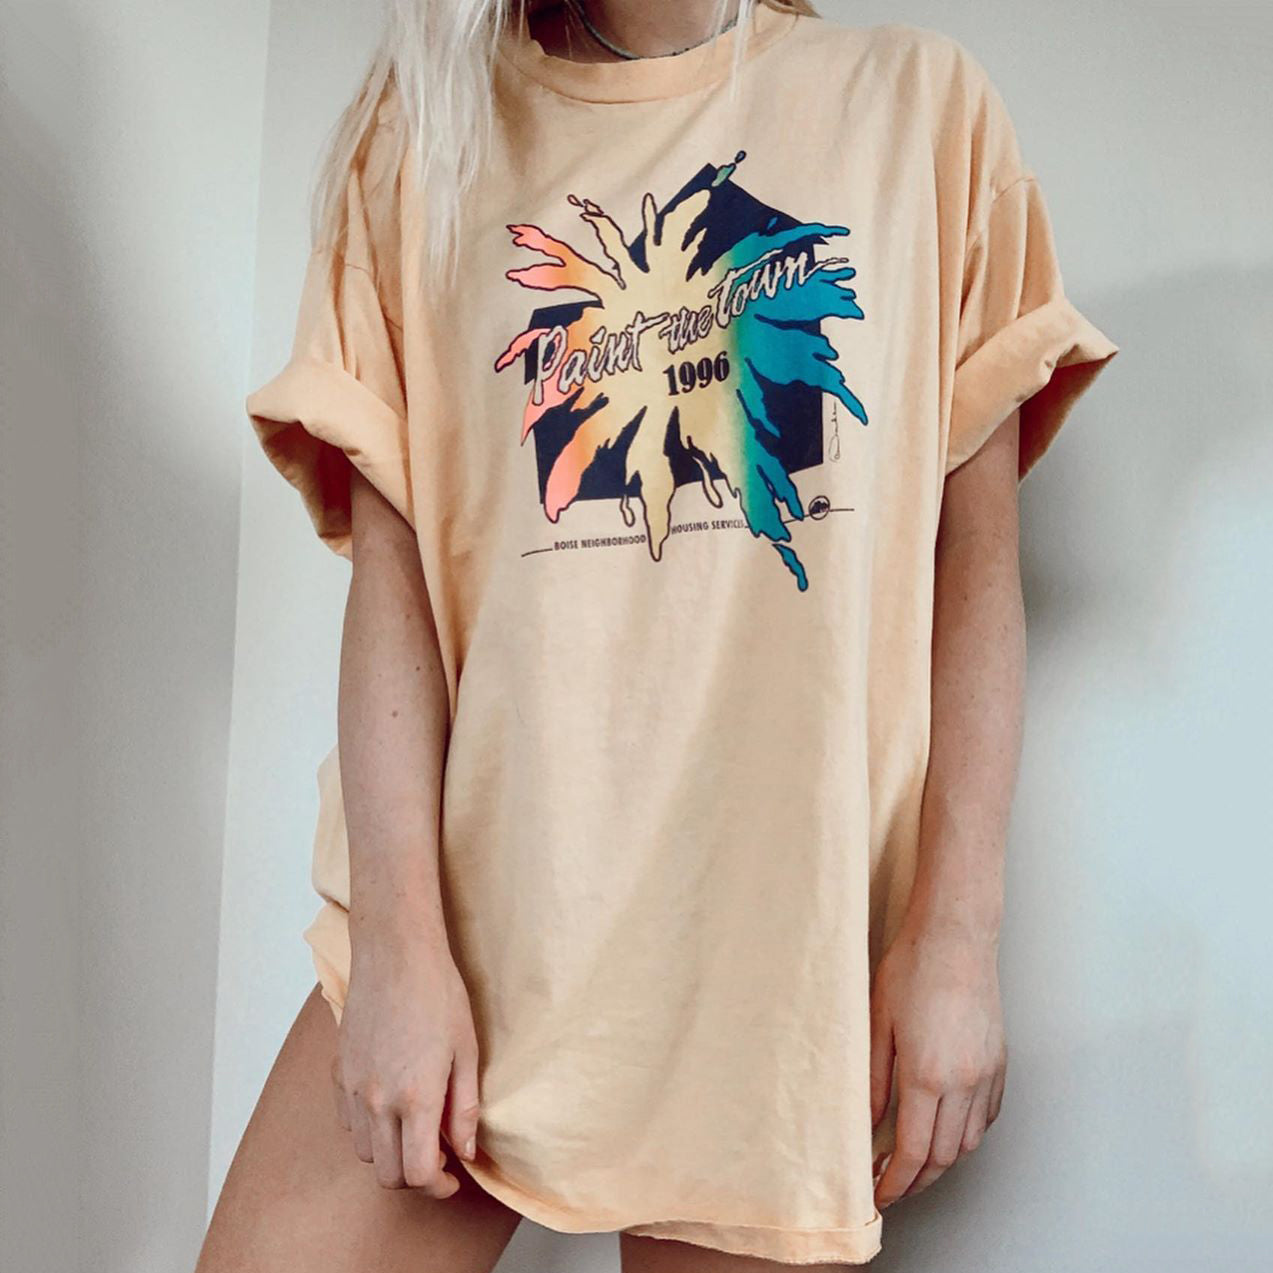 Casual Paint the Tour Loose Long T-shirt